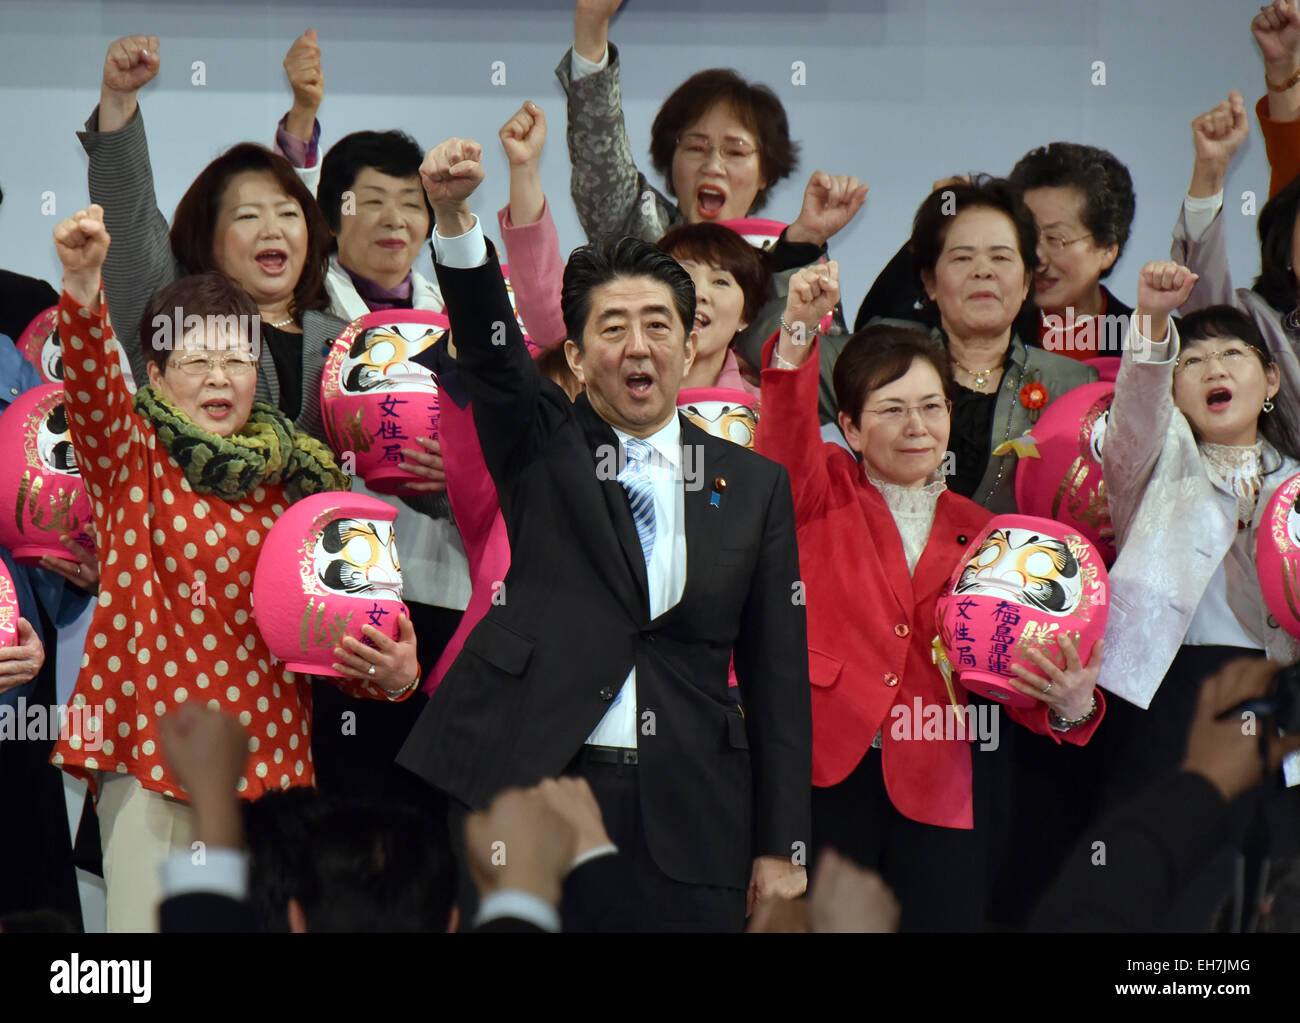 Tokyo, Japan. 8th Mar, 2015. Japan's Prime Minister Shinzo Abe, center, leads the fellow party members to raise - Stock Image